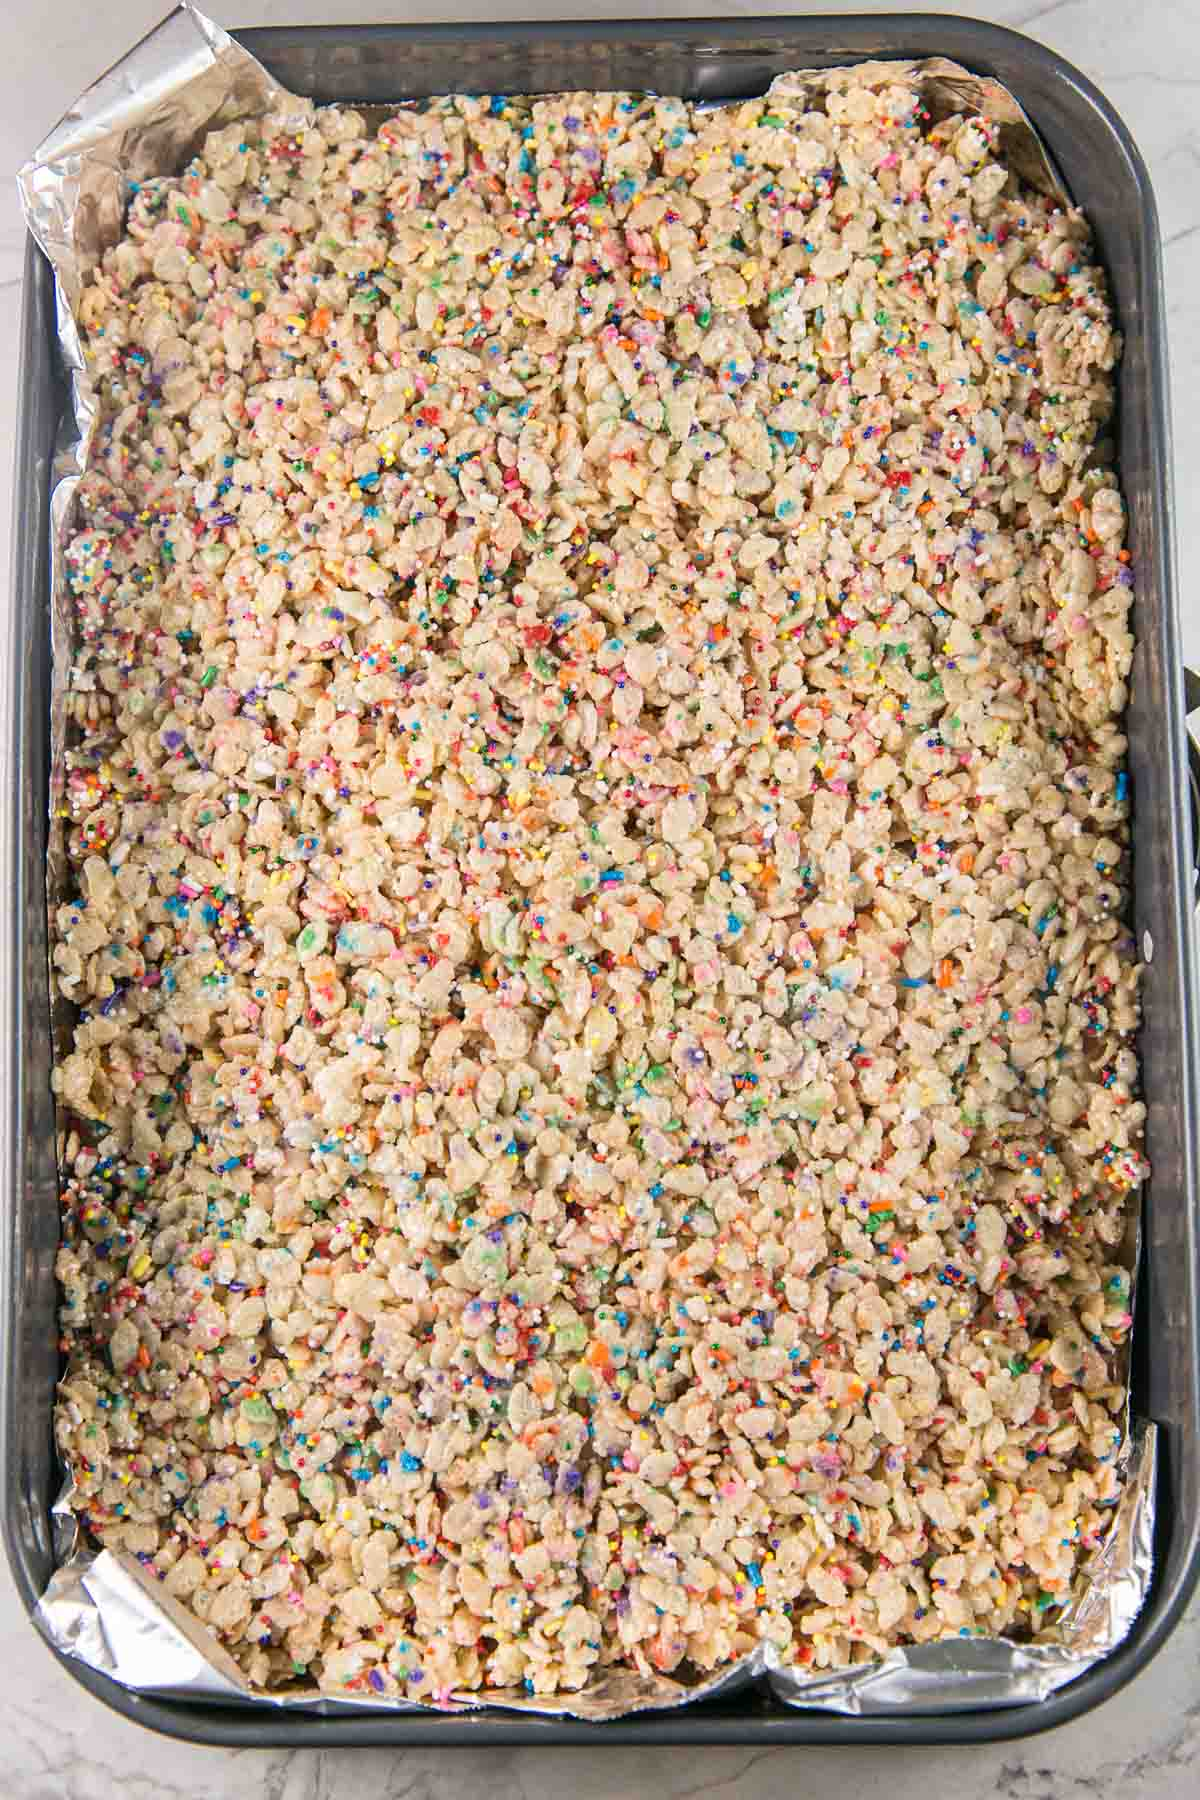 a large pan of uncut rice krispie treats mixed with rainbow sprinkles